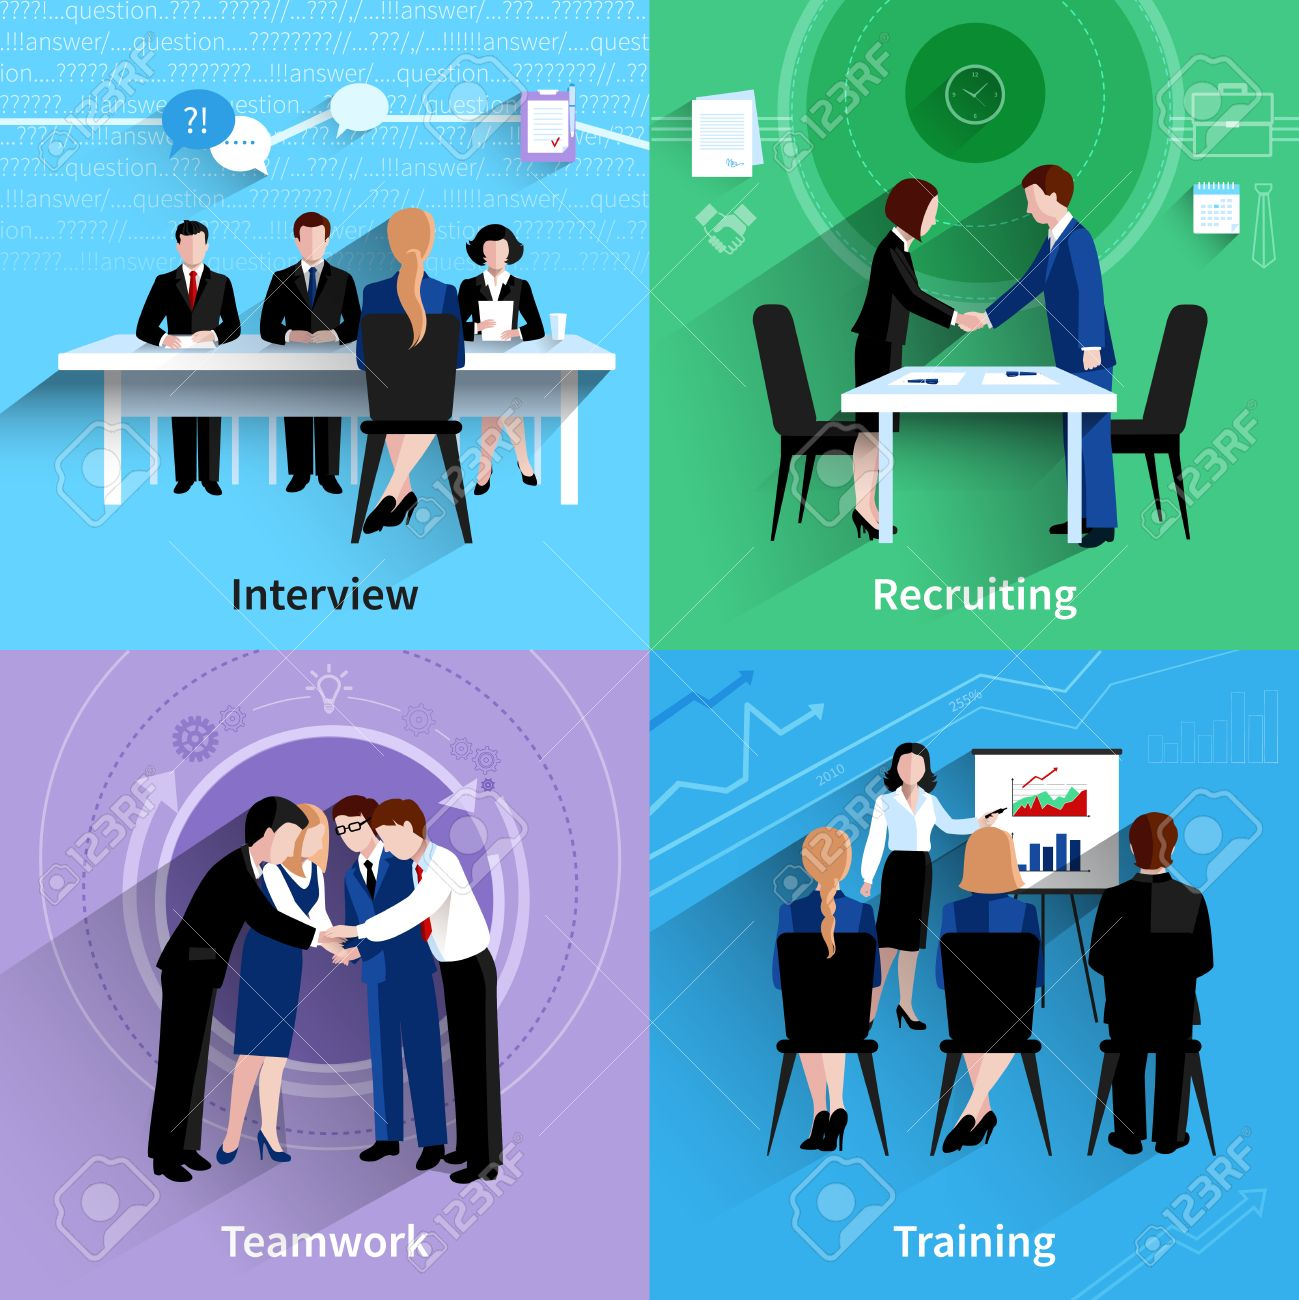 human resources interview recruiting and teamwork training  human resources interview recruiting and teamwork training 4 flat icons square composition banner abstract isolated vector